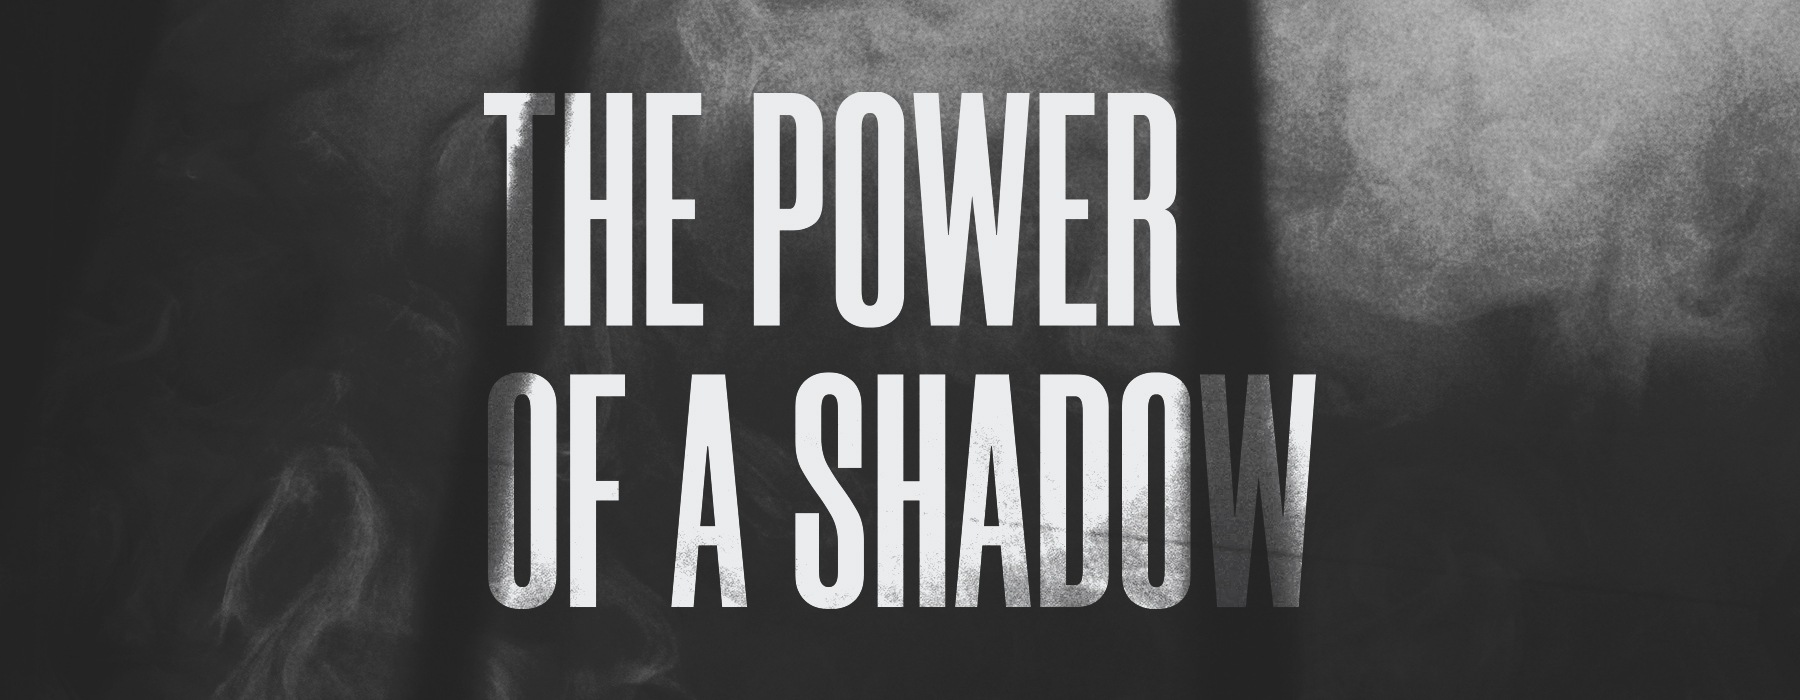 The Power of a Shadow